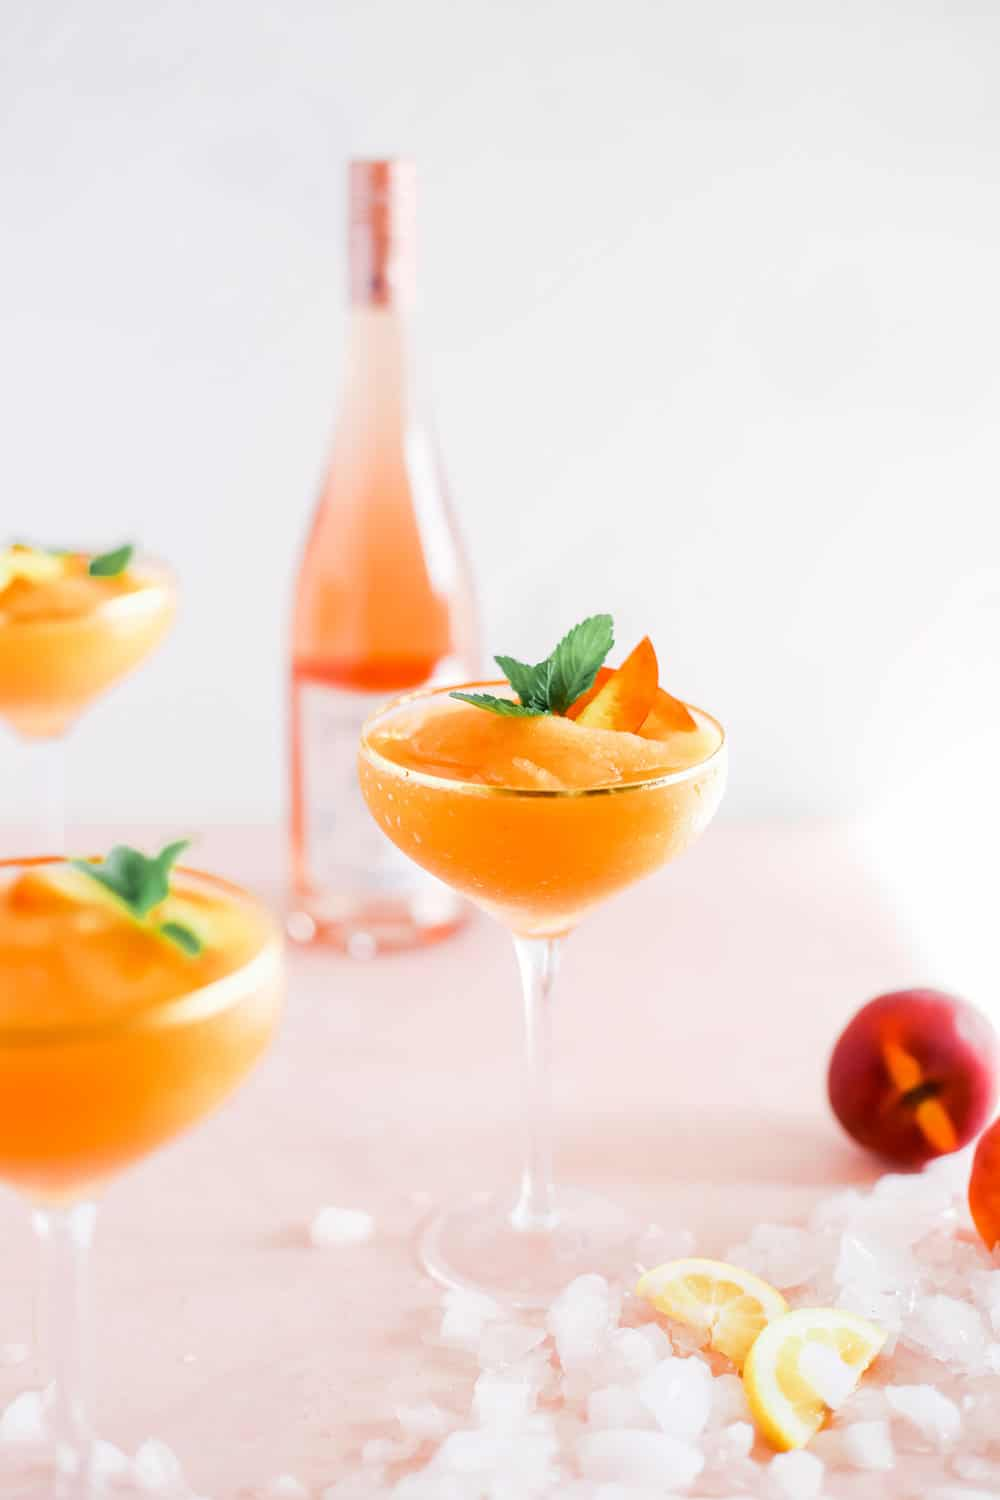 Strawberry Peach Frose in Coupe Glass with Mint